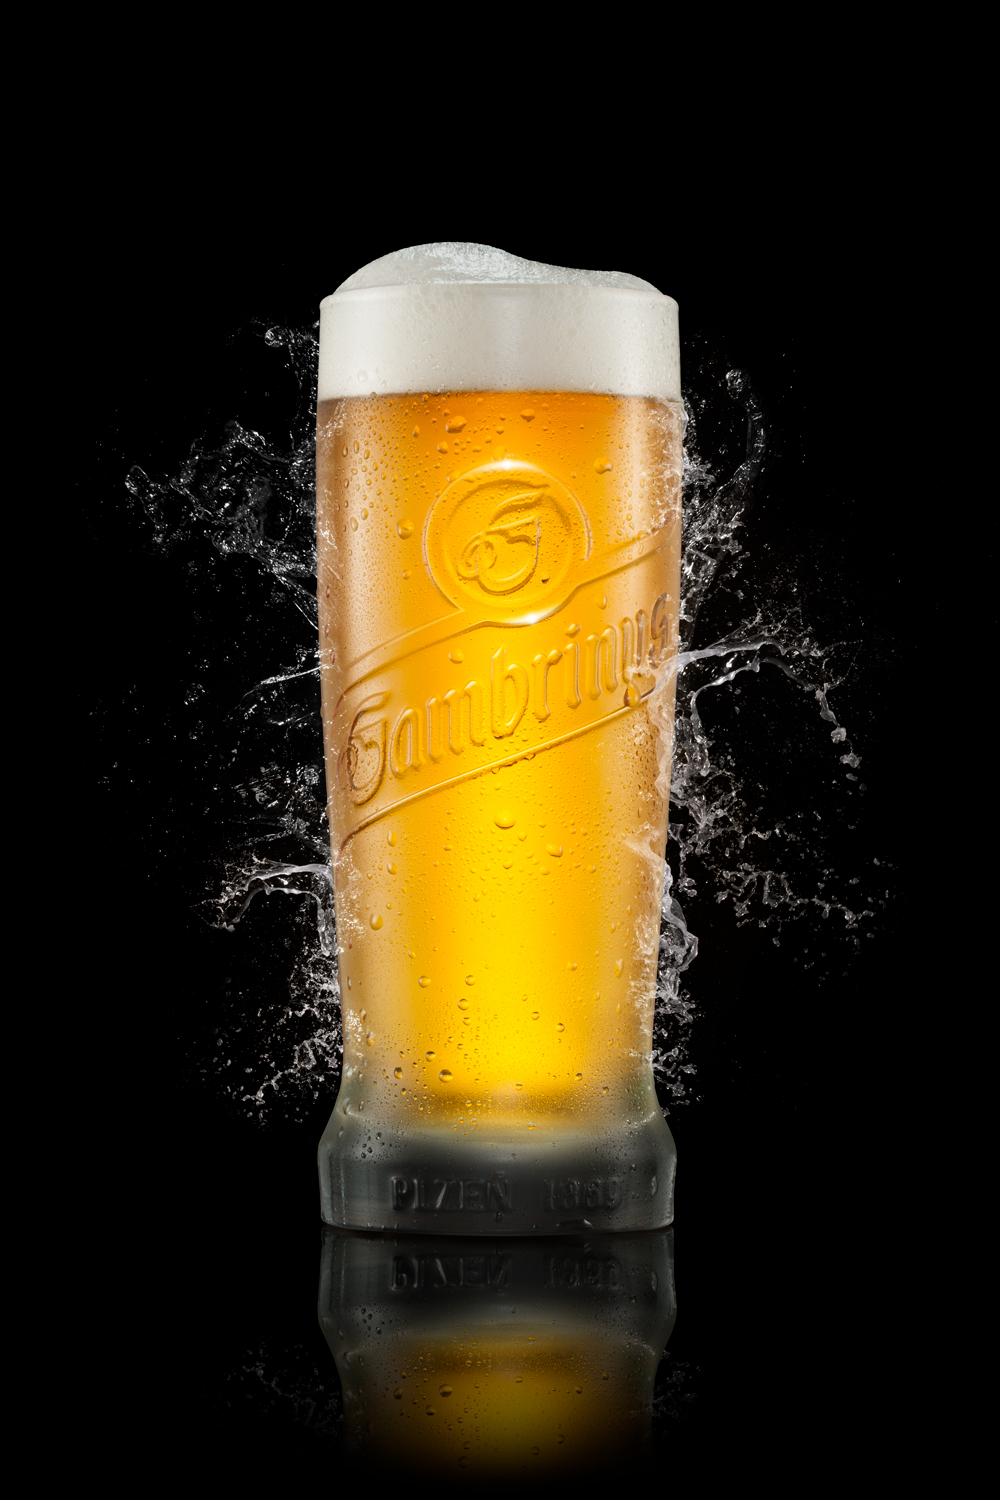 lettstudio_beverage_photography_gambrinus_beer_glass.jpg